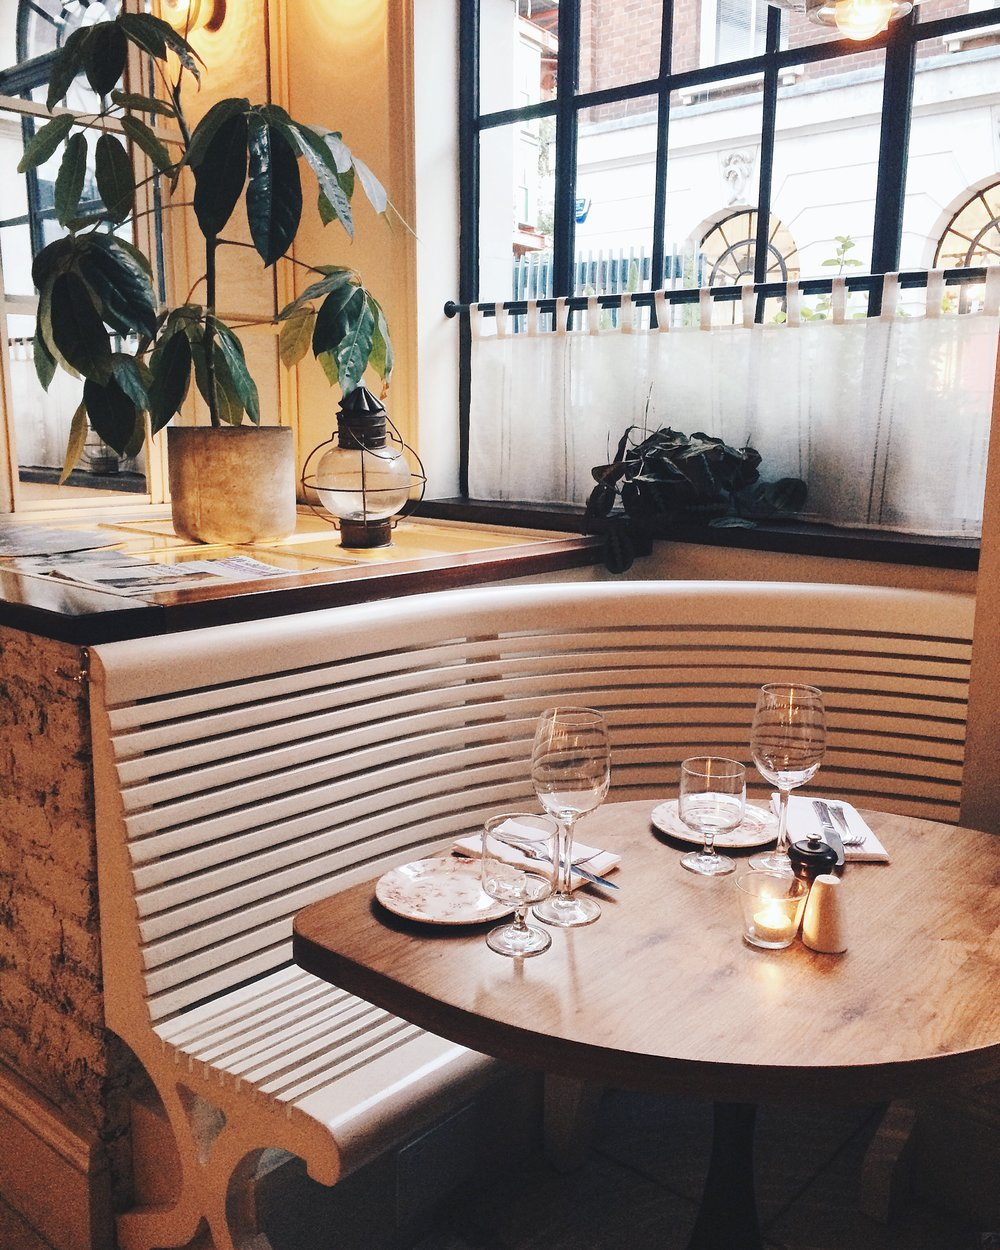 The favorite seat of solo diners at Blixen.